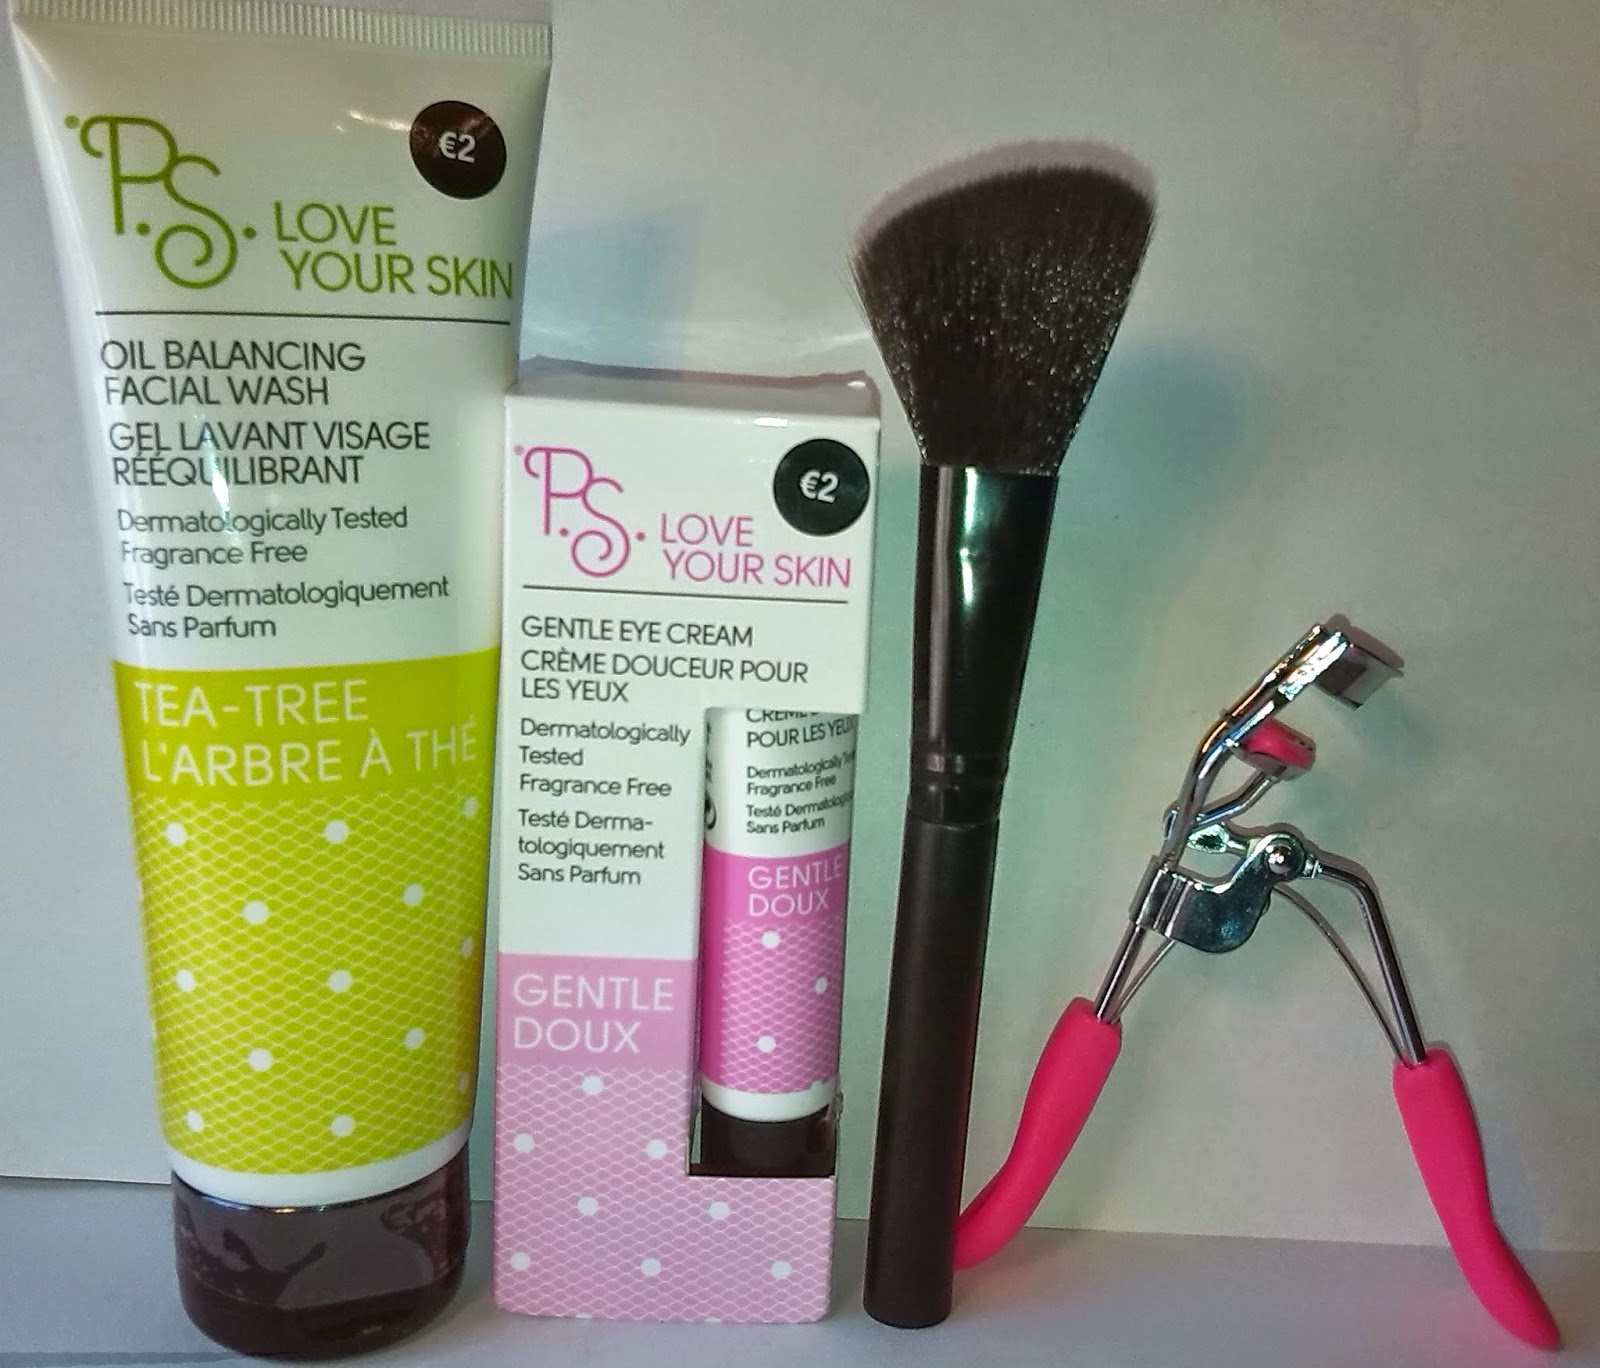 Productos Cosmeticos de P.S. Love (Primark)Vol.2